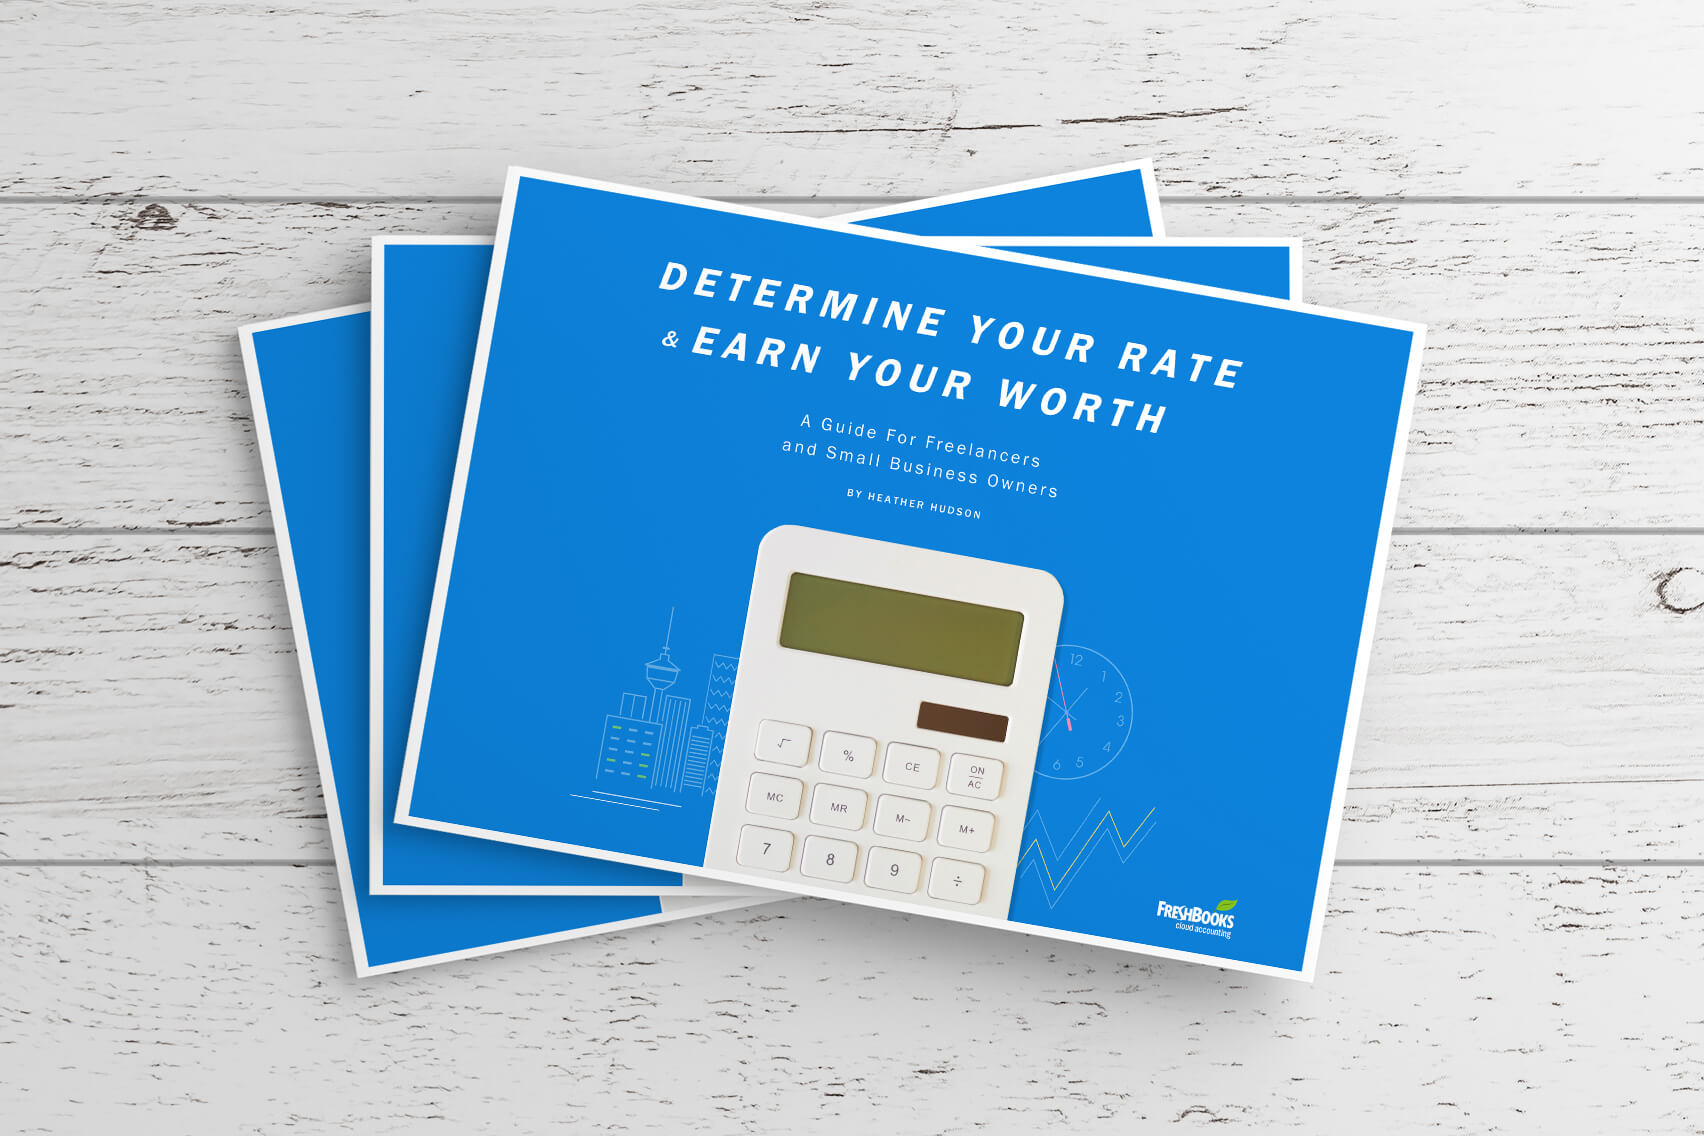 Determine Your Rate & Earn Your Worth [Free eBook]